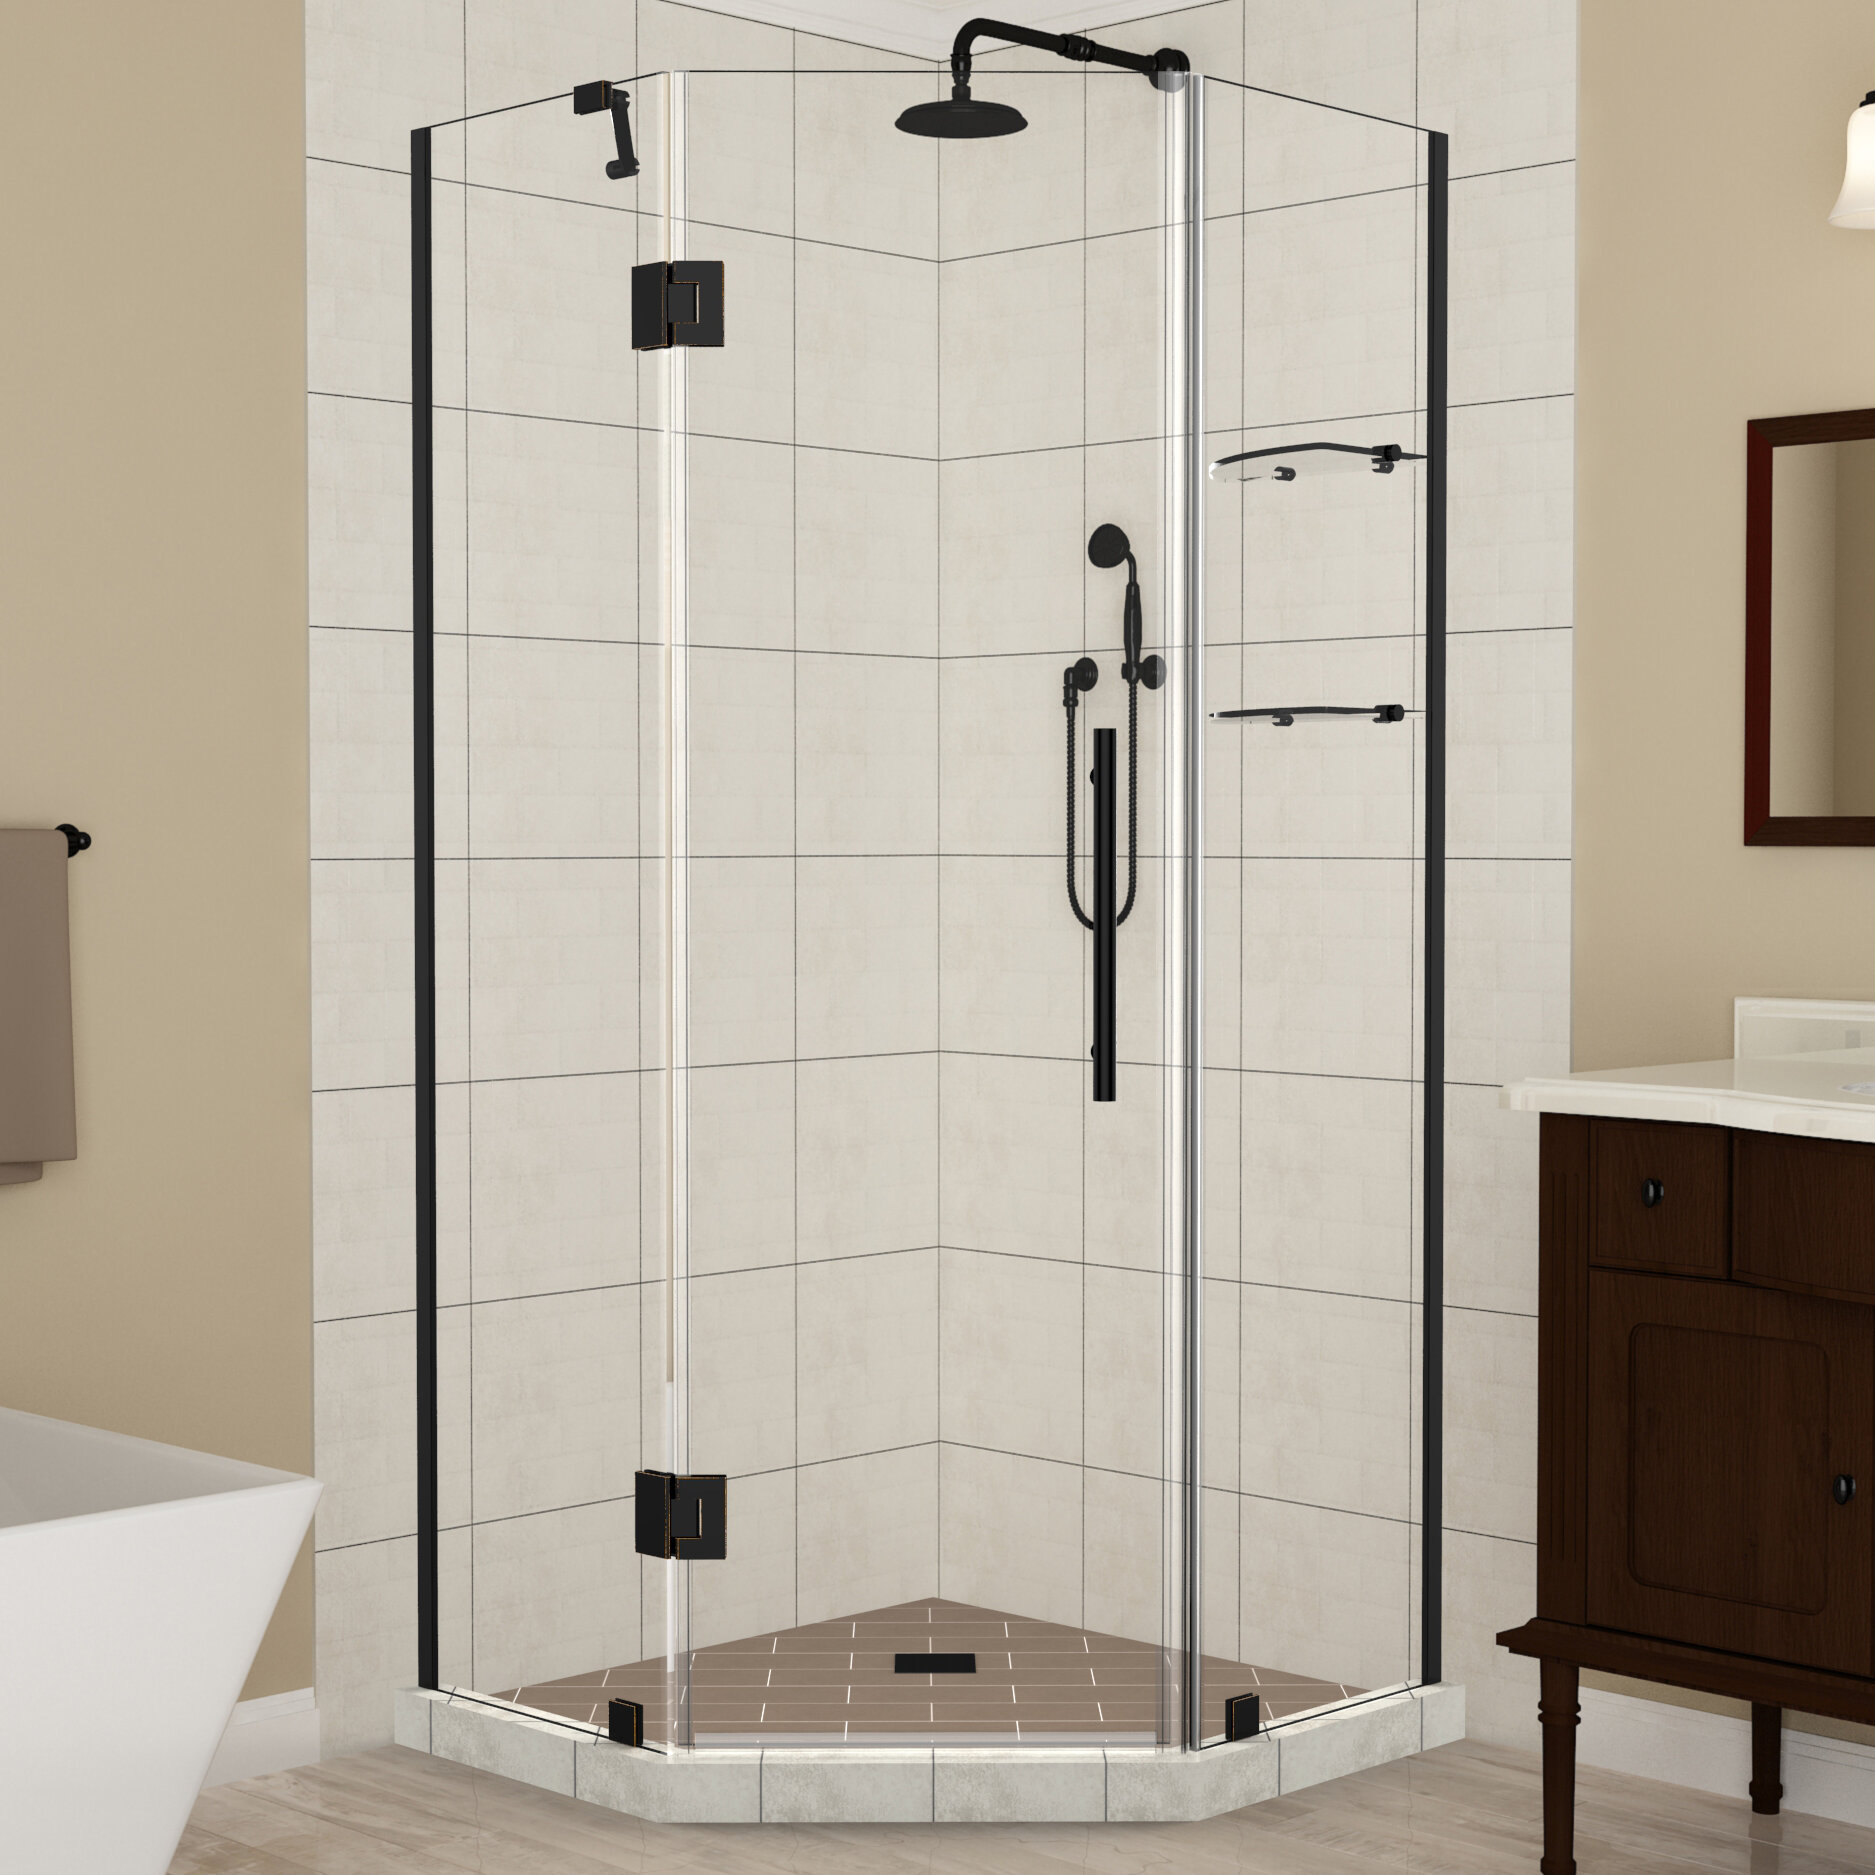 Merrick Gs 38 X 72 Neo Angle Hinged Shower Enclosure